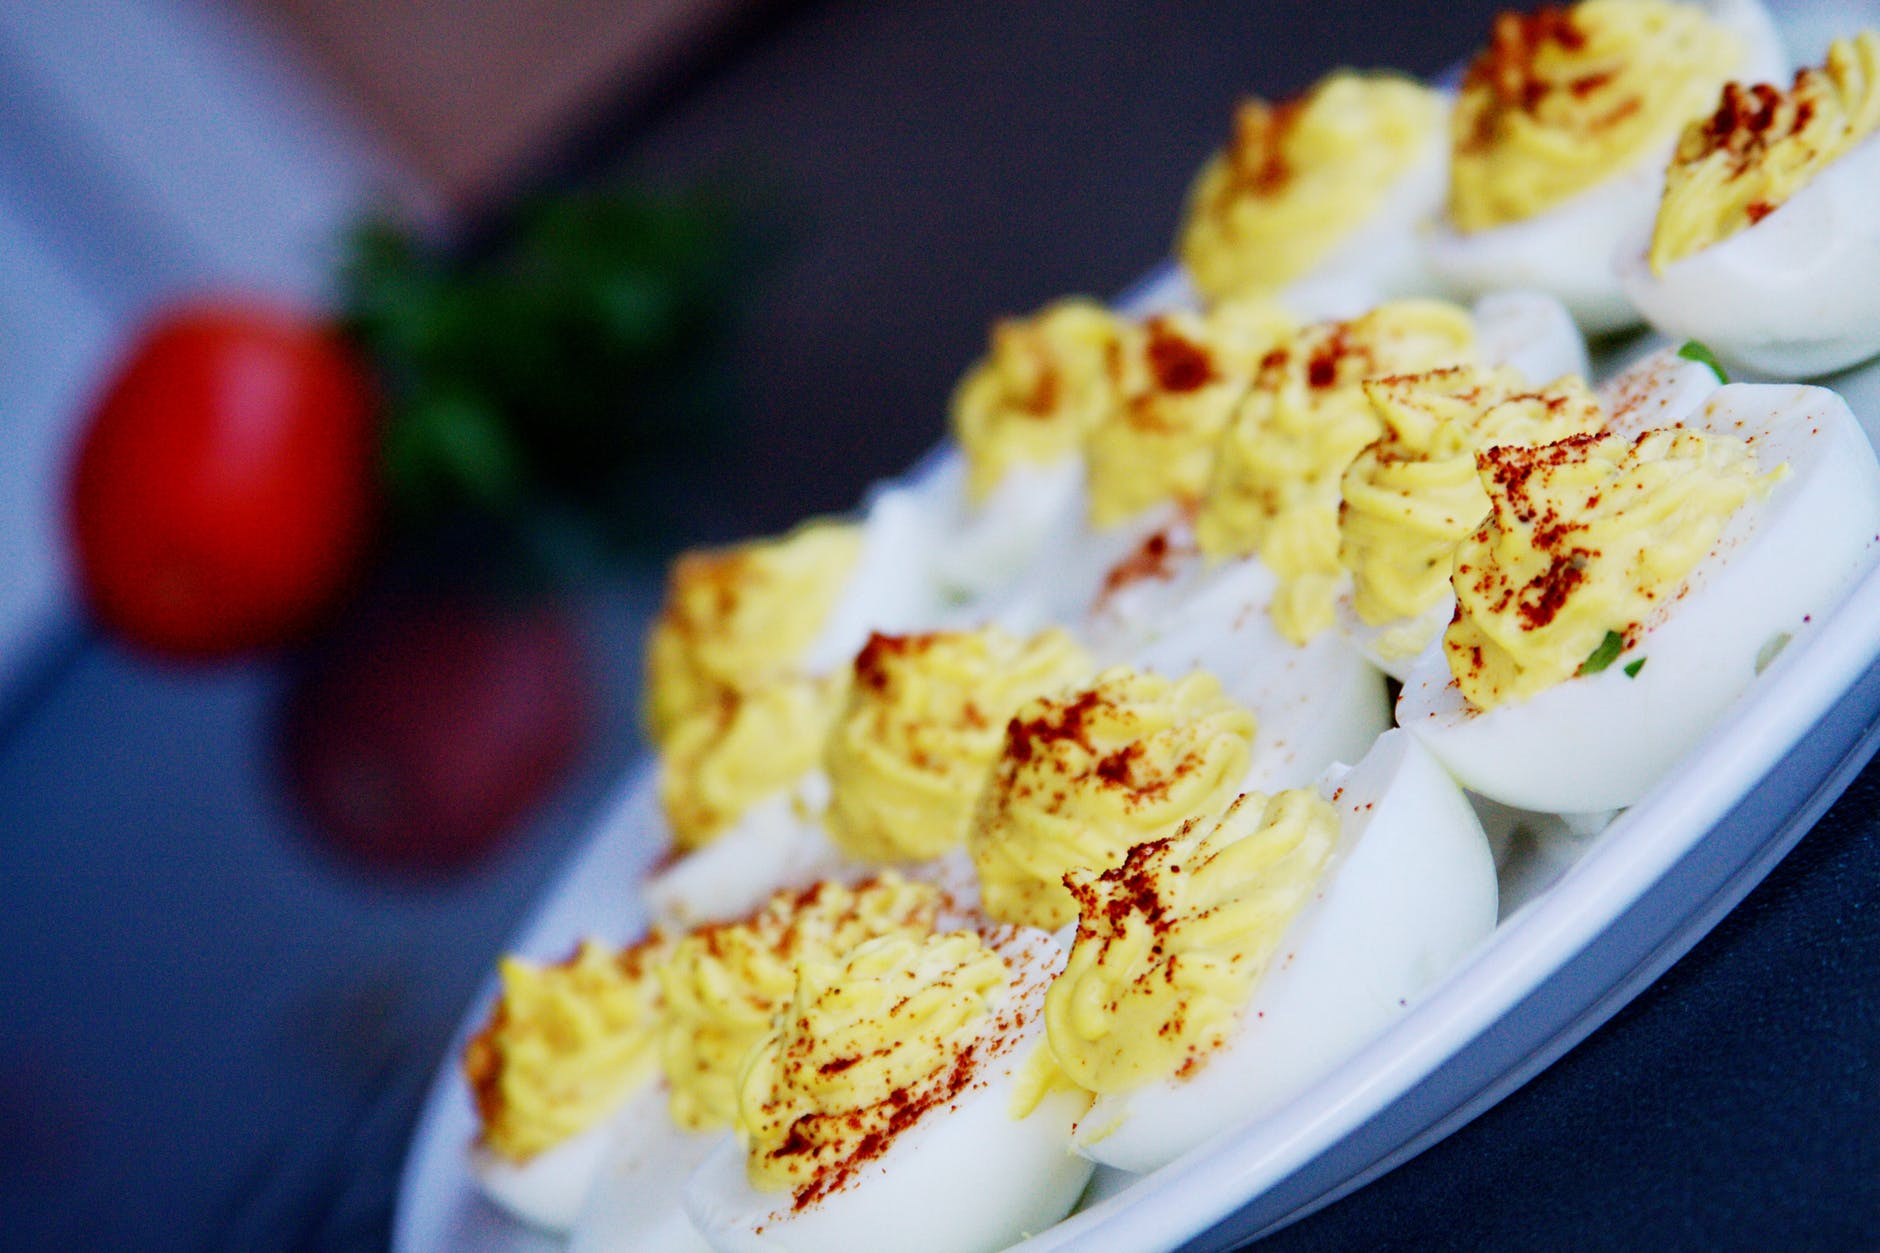 The Incredible, Edible Deviled Egg